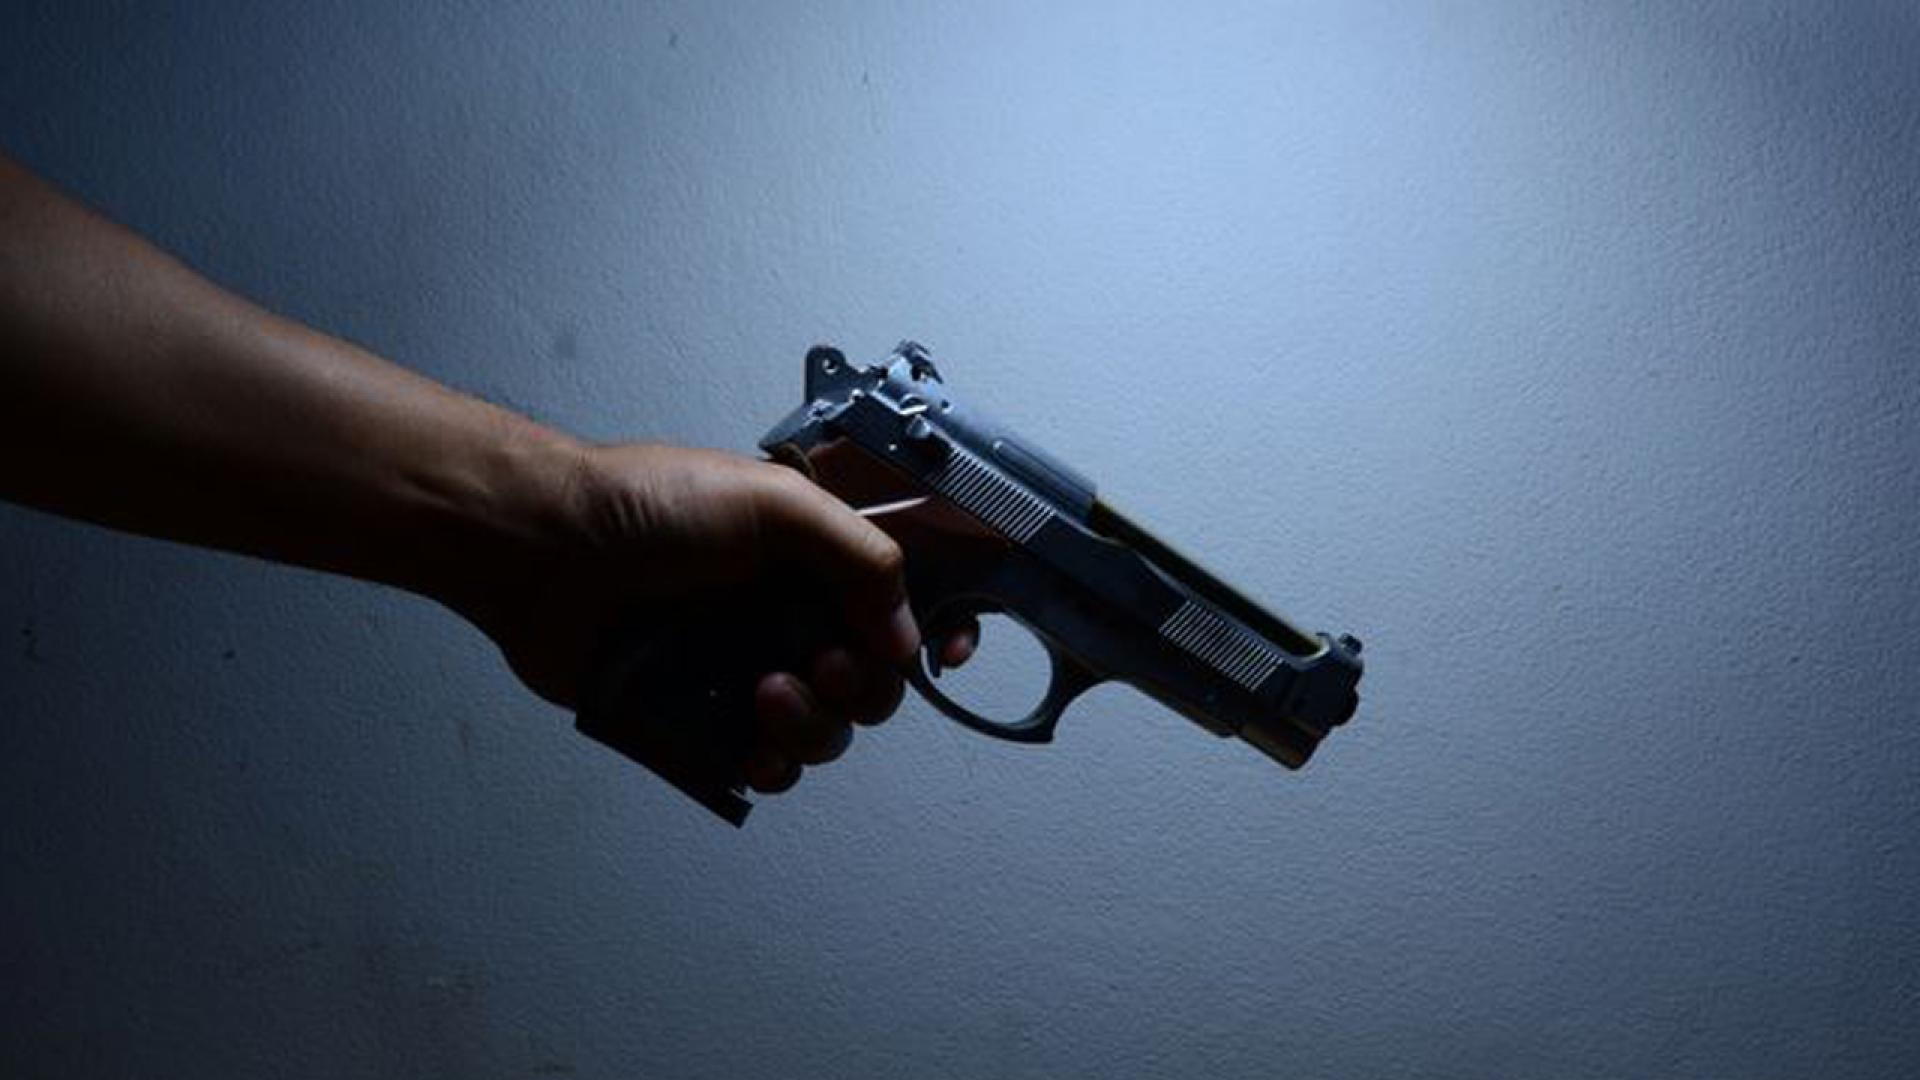 A 15-year-old was showing off a gun when it discharged, killing a friend.